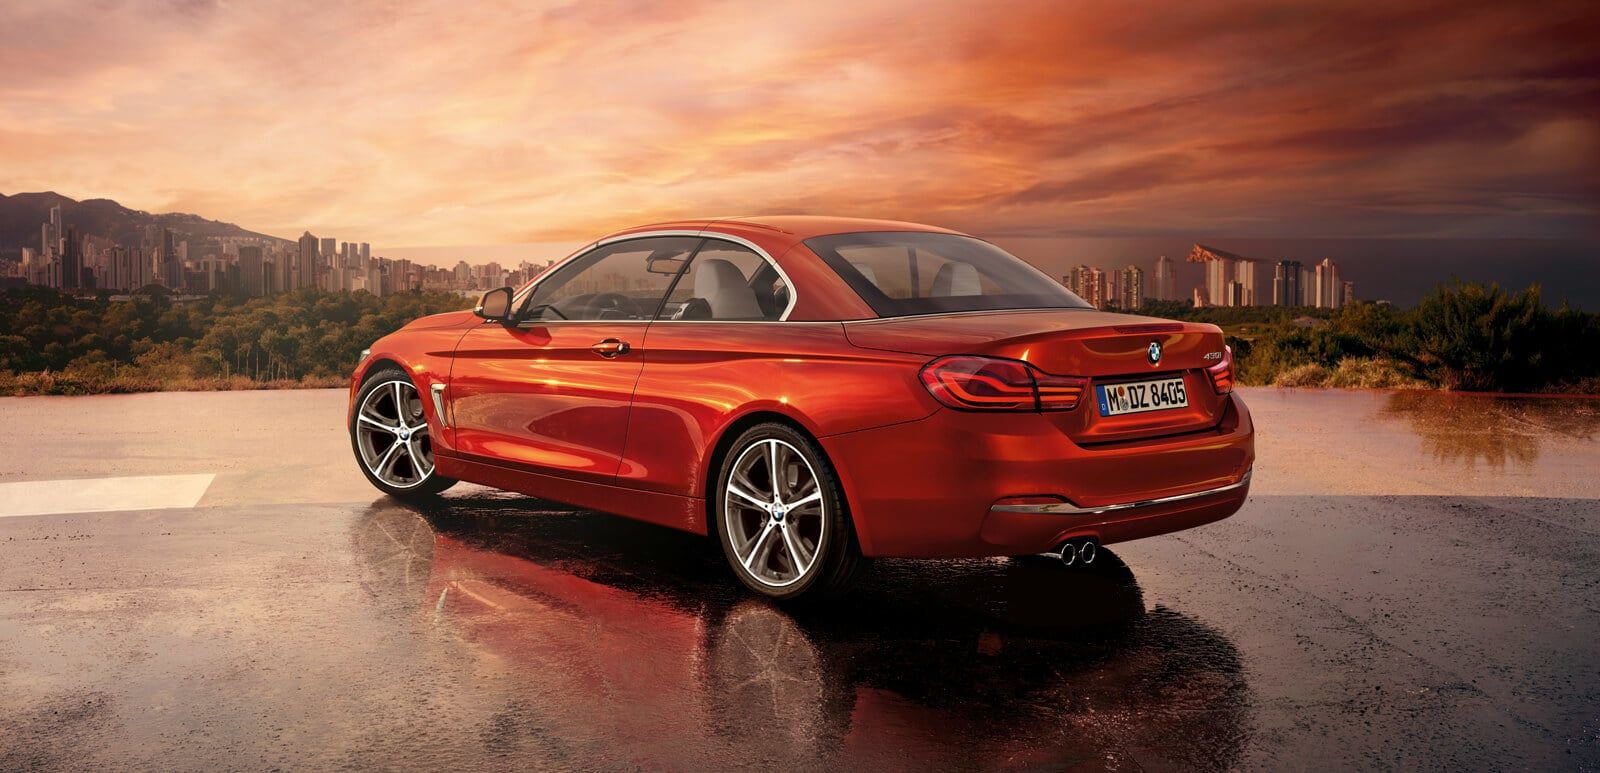 2019 BMW 4 Series HD For Android Phones Free Download – Pixeles